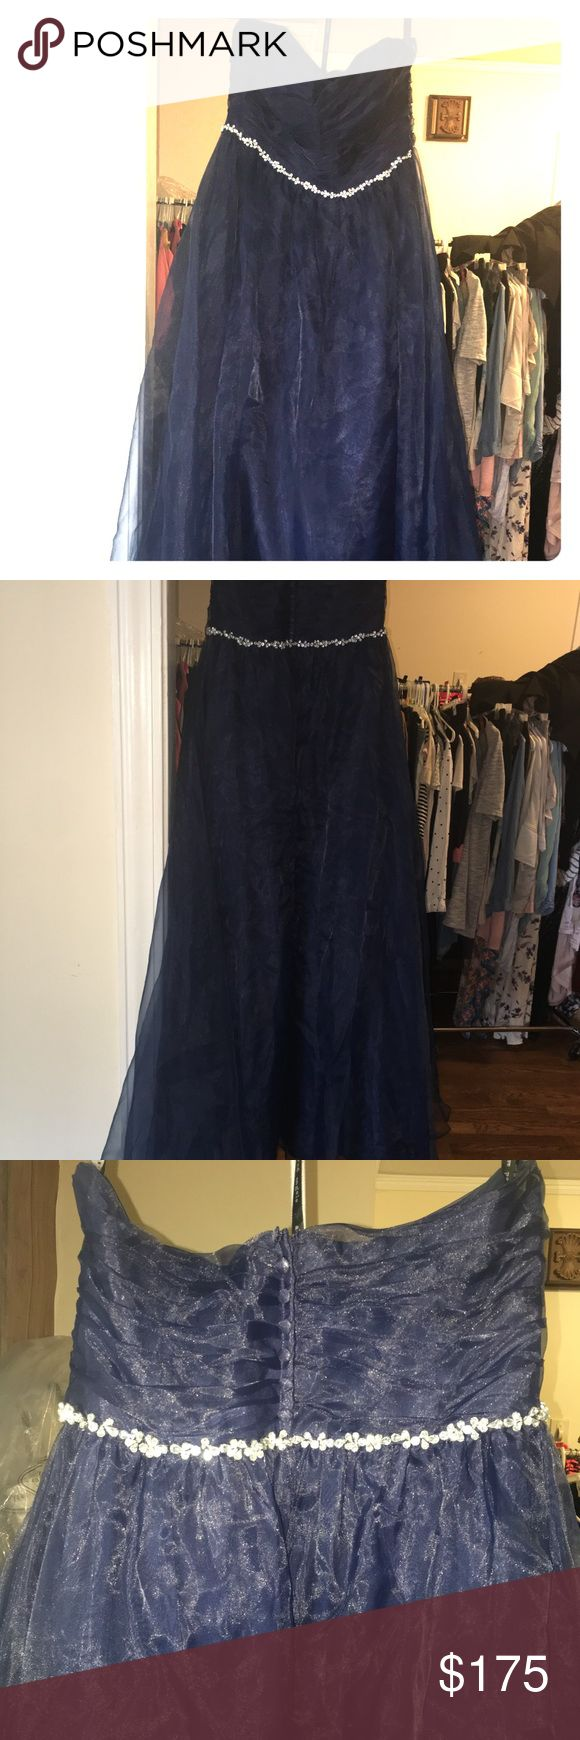 Alfred Angelo Sapphire Bridesmaid Dress https://www.theknot.com/fashion/8107l-sapphire-bridesmaids-by-alfred-angelo-bridesmaid-dress There's is a tear at bottom of skirt - last picture shows damage. Alfred Angelo Dresses Wedding